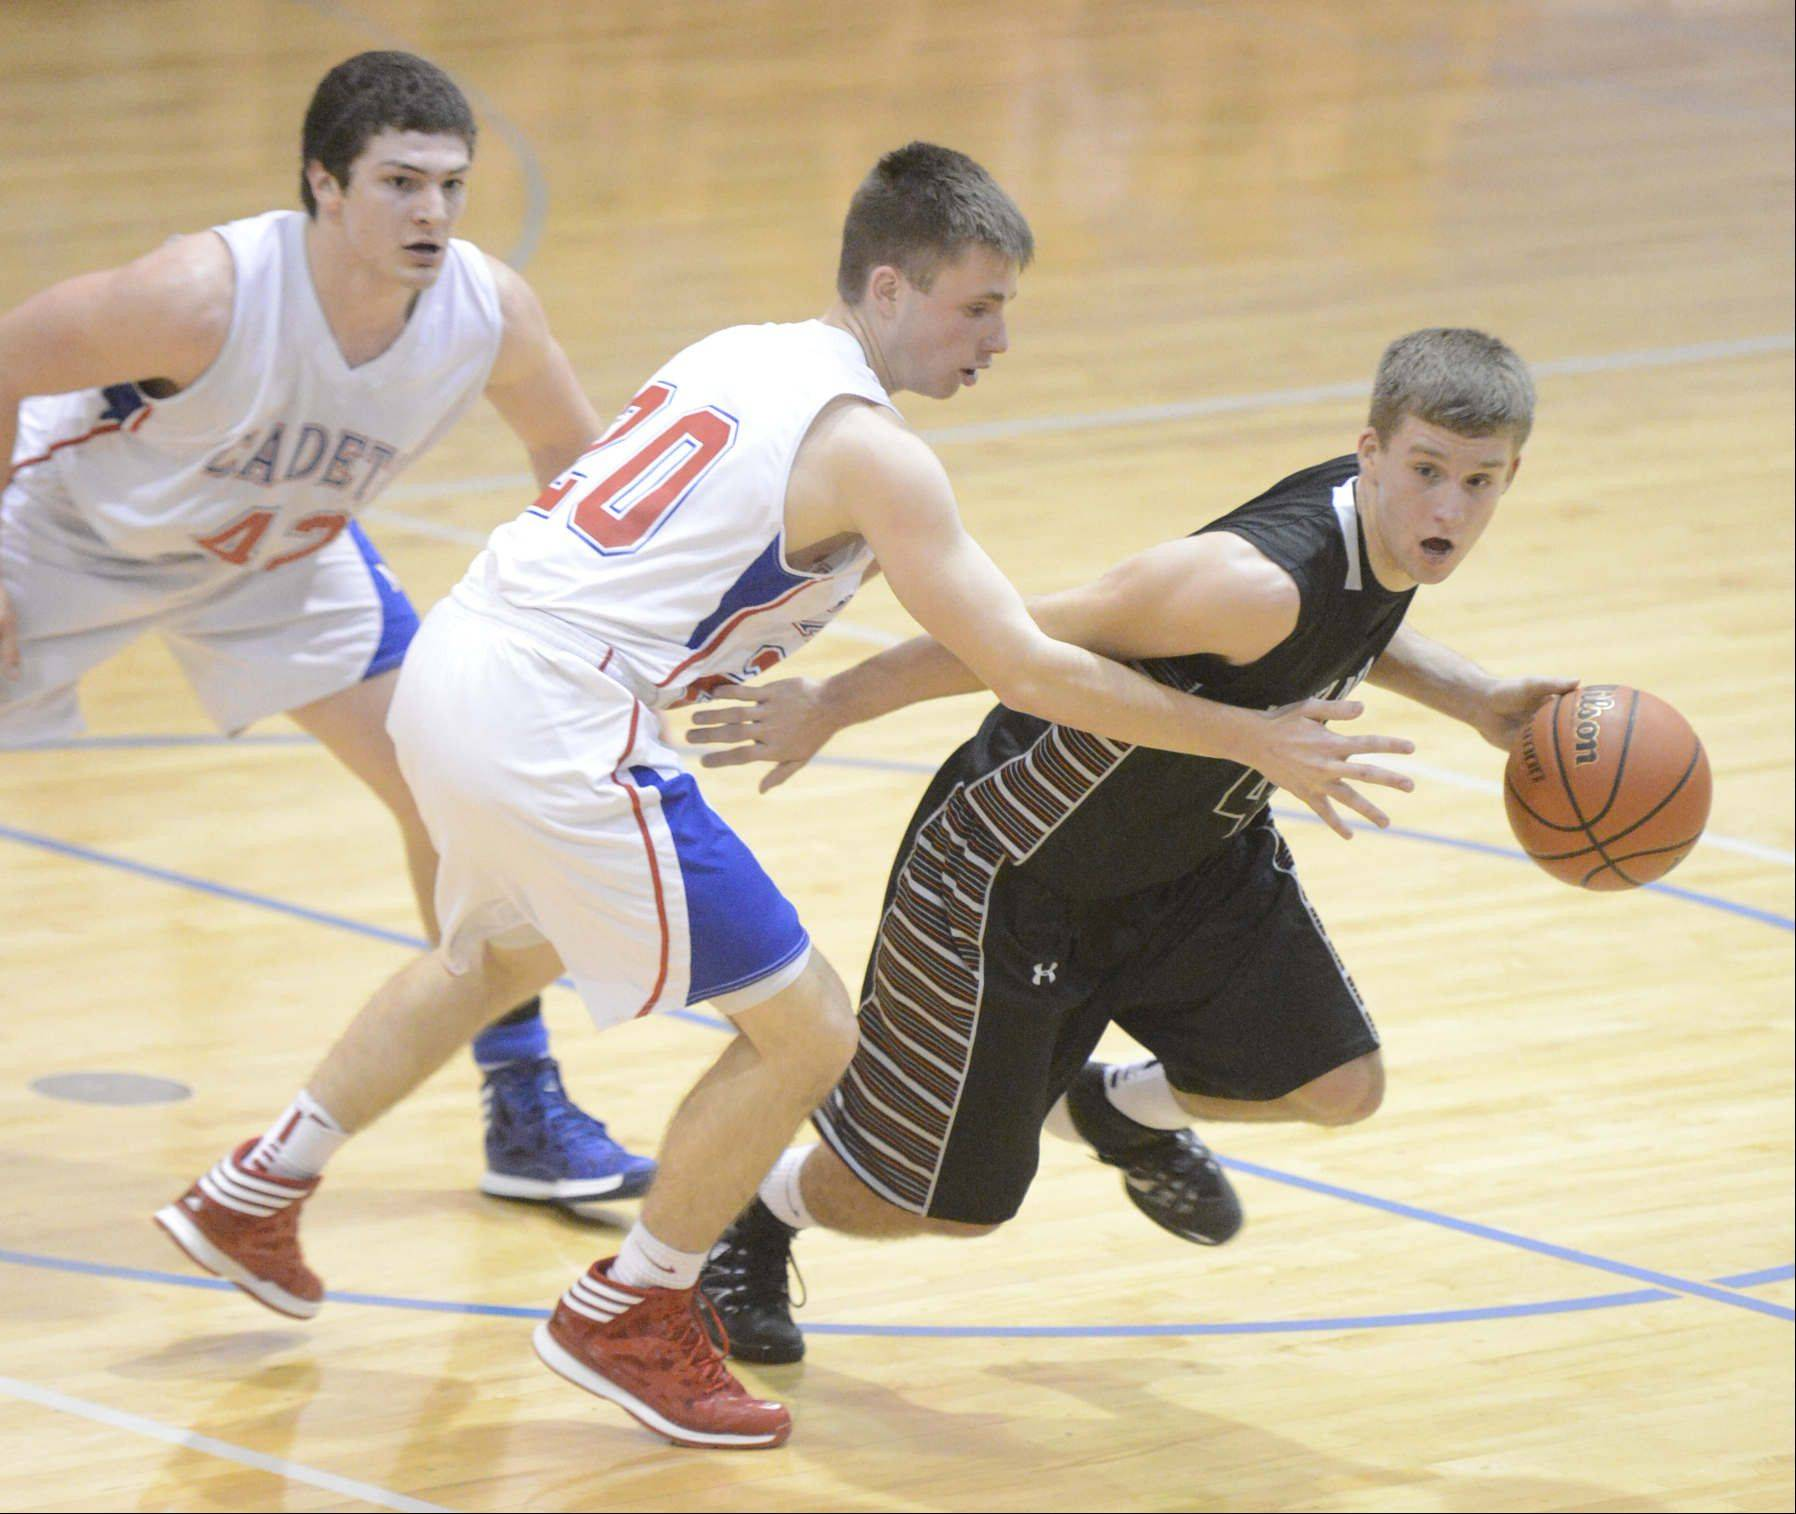 Images from the Kaneland vs. Marmion Academy boys basketball game Tuesday, January 14, 2014.